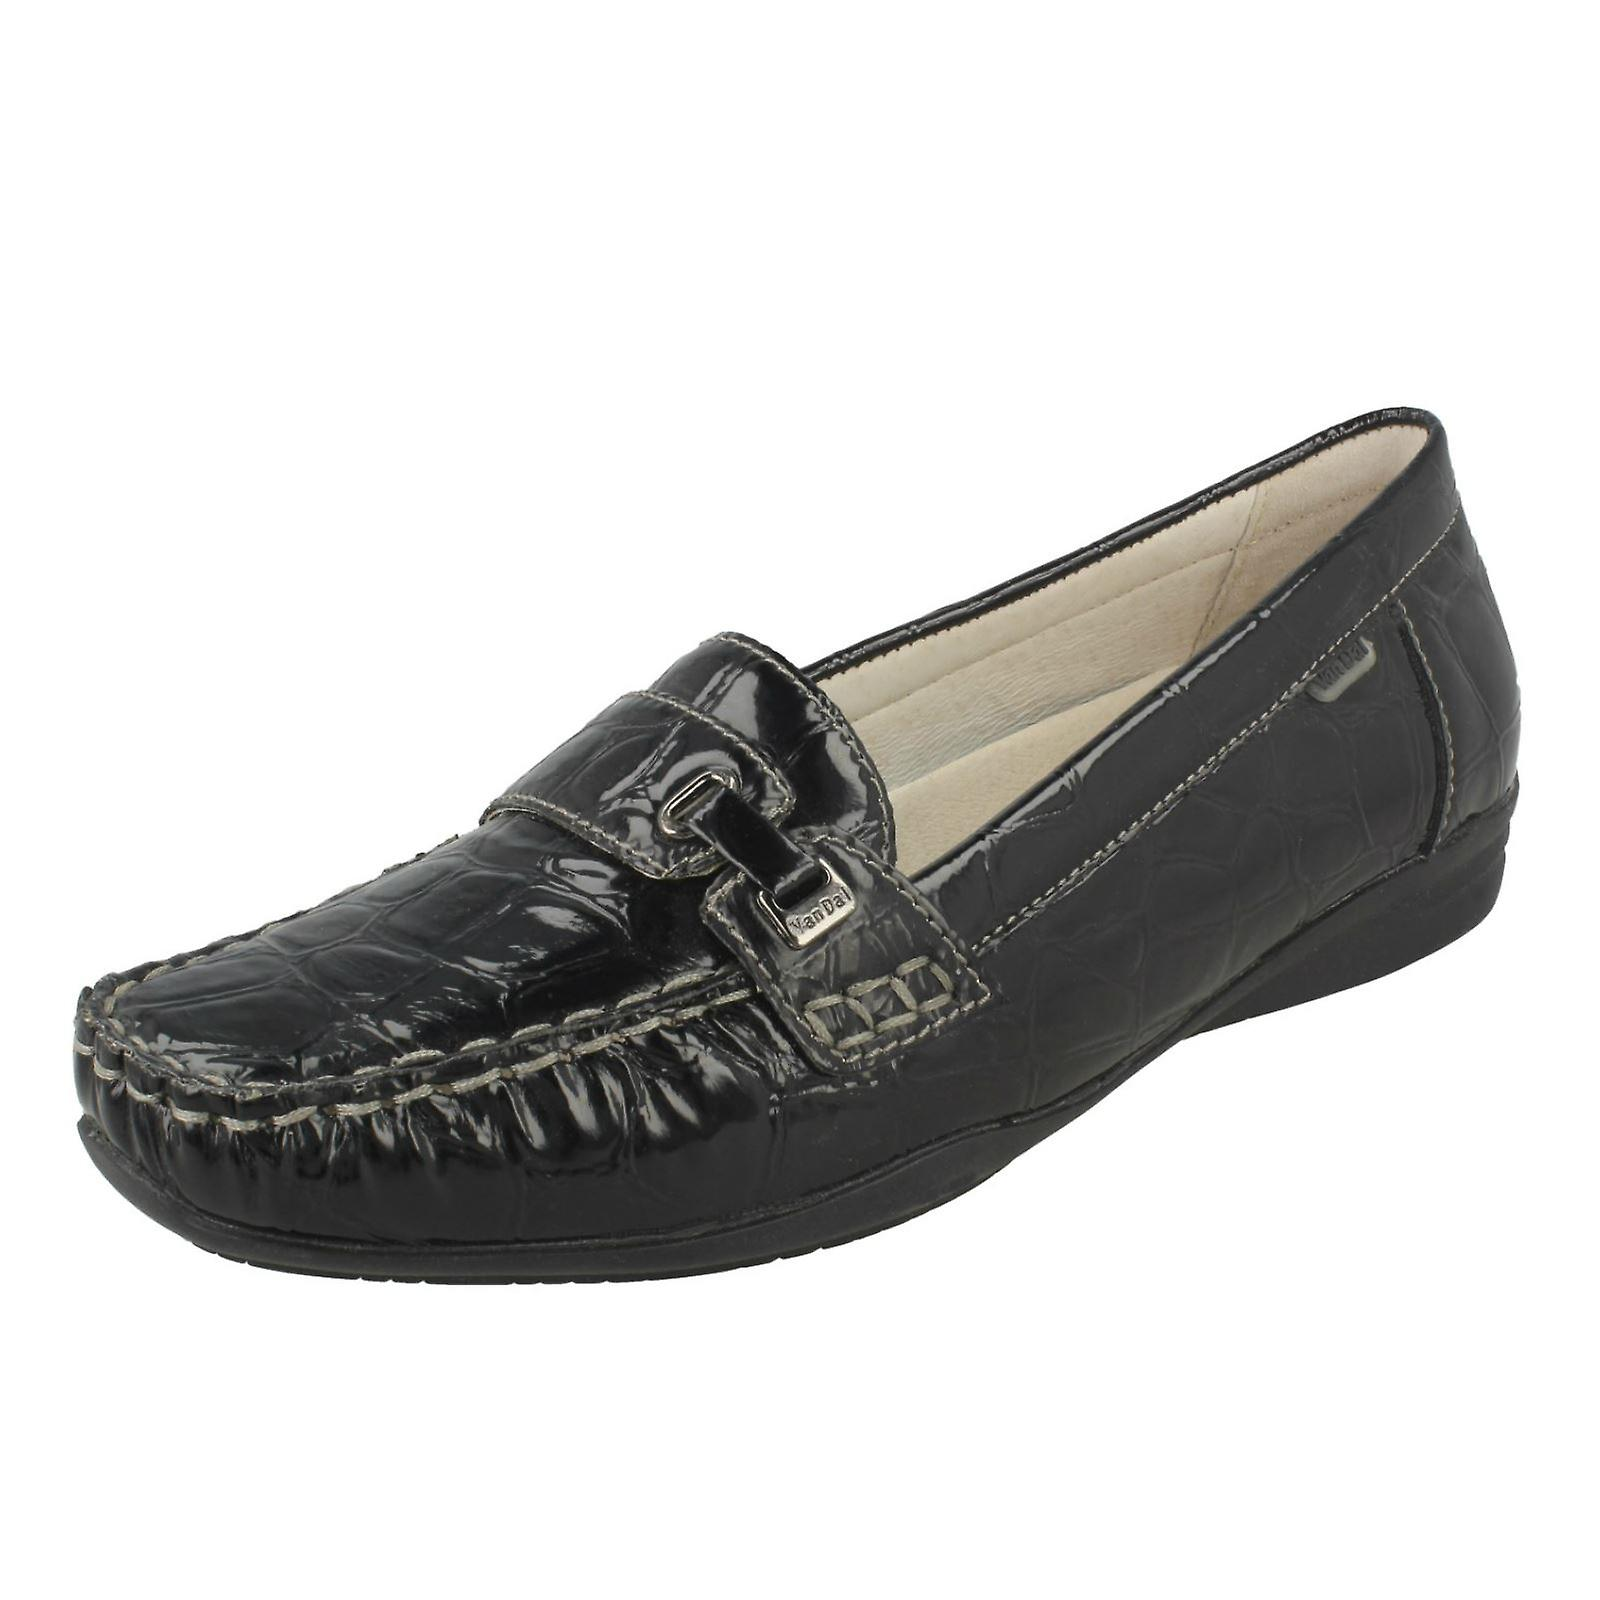 Van Dal Loafer Style Flat Slip On Shoes X0tLF